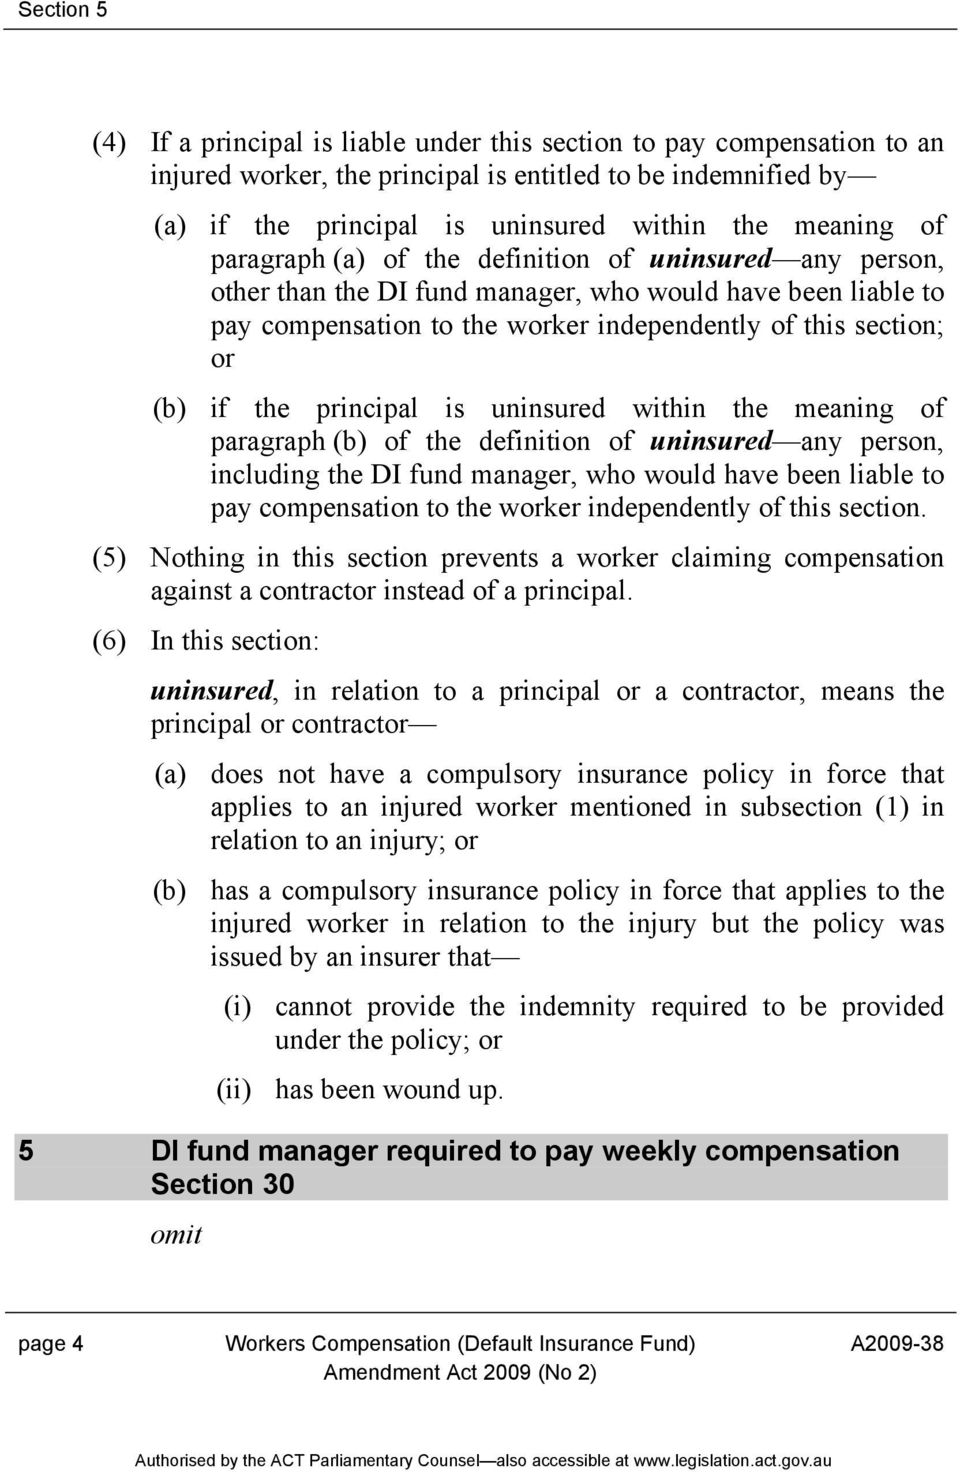 principal is uninsured within the meaning of paragraph (b) of the definition of uninsured any person, including the DI fund manager, who would have been liable to pay compensation to the worker